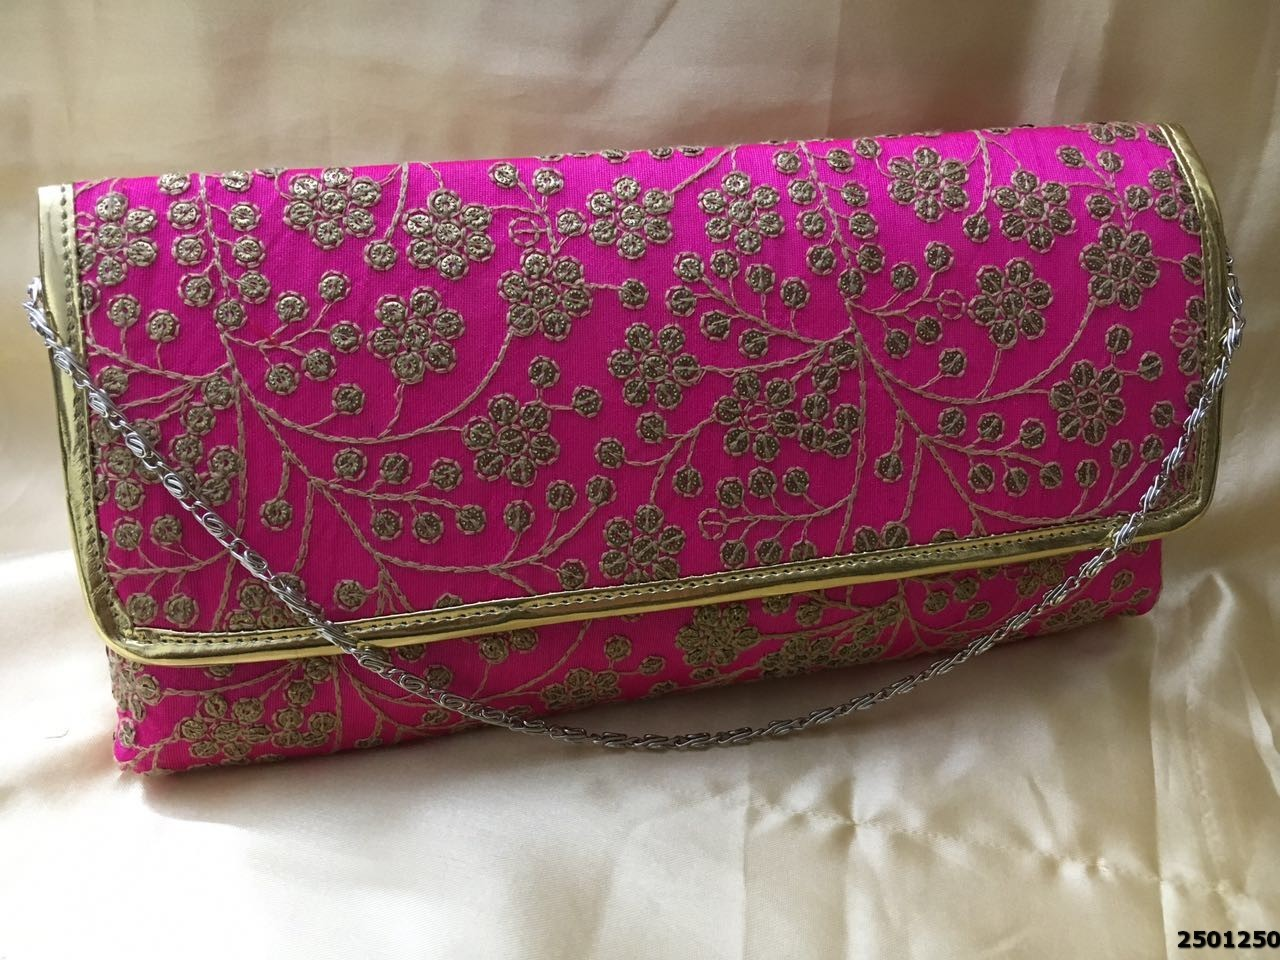 Ethnic And Classy Embroidery Clutch Bag